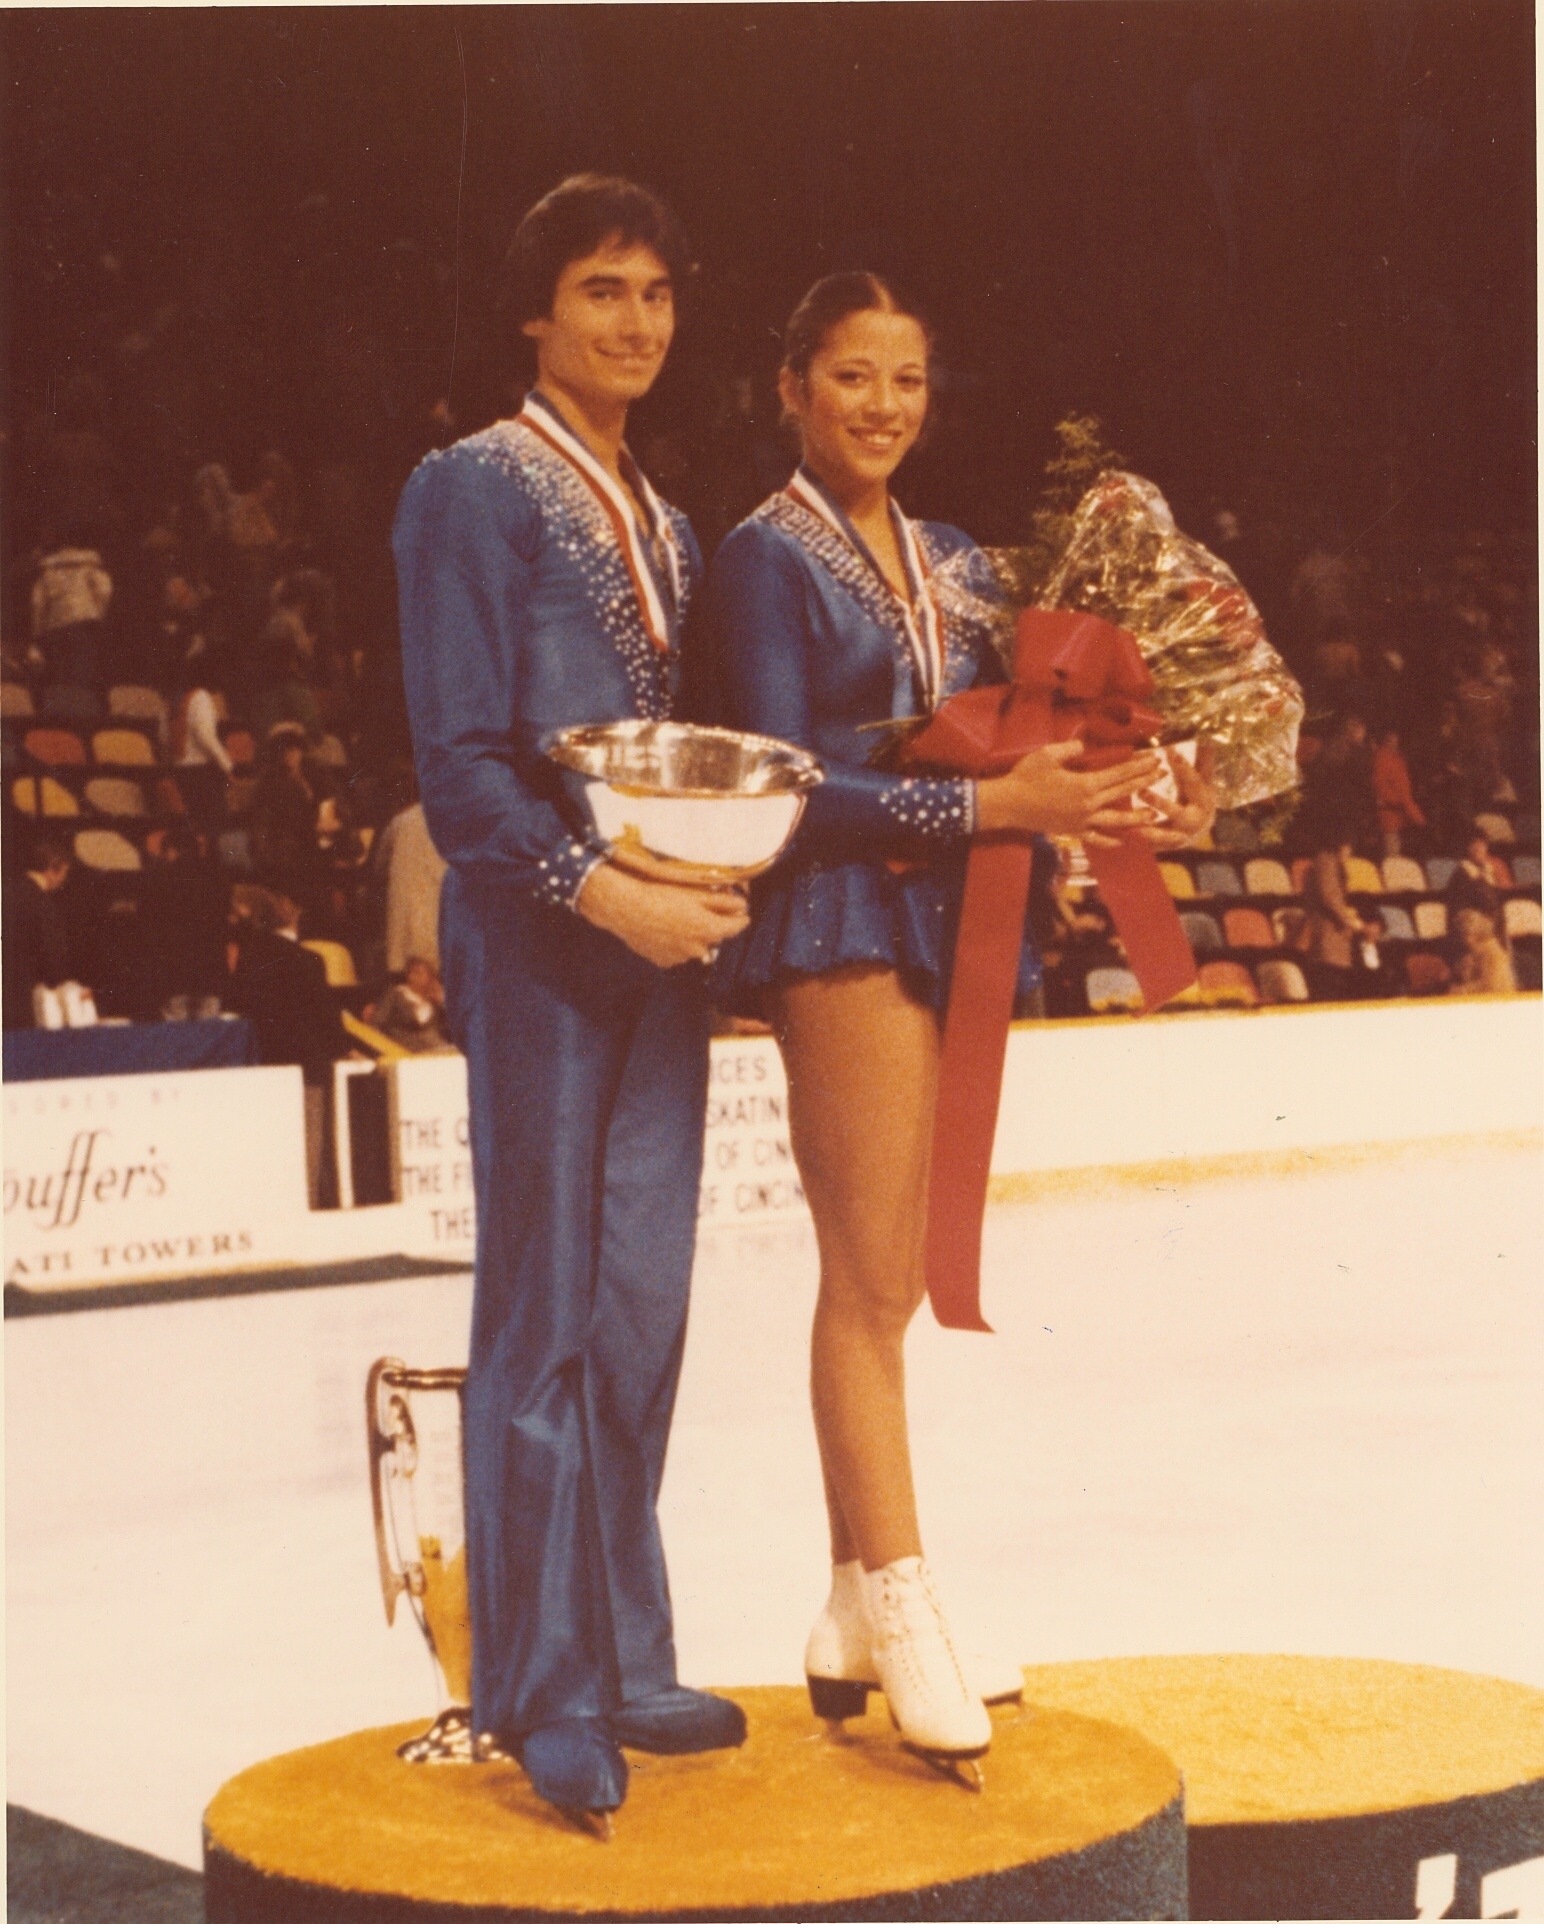 Normal   0   0   1   18   108   1   1   132   11.1539                      0       0   0           Lake Placid 1980  - TaiBabilonia(right)andRandyGardner competed at Lake Placid 1980; here as the 1979World Pairs champions.    (Source:randygarnermemoirs.wordpress.com)